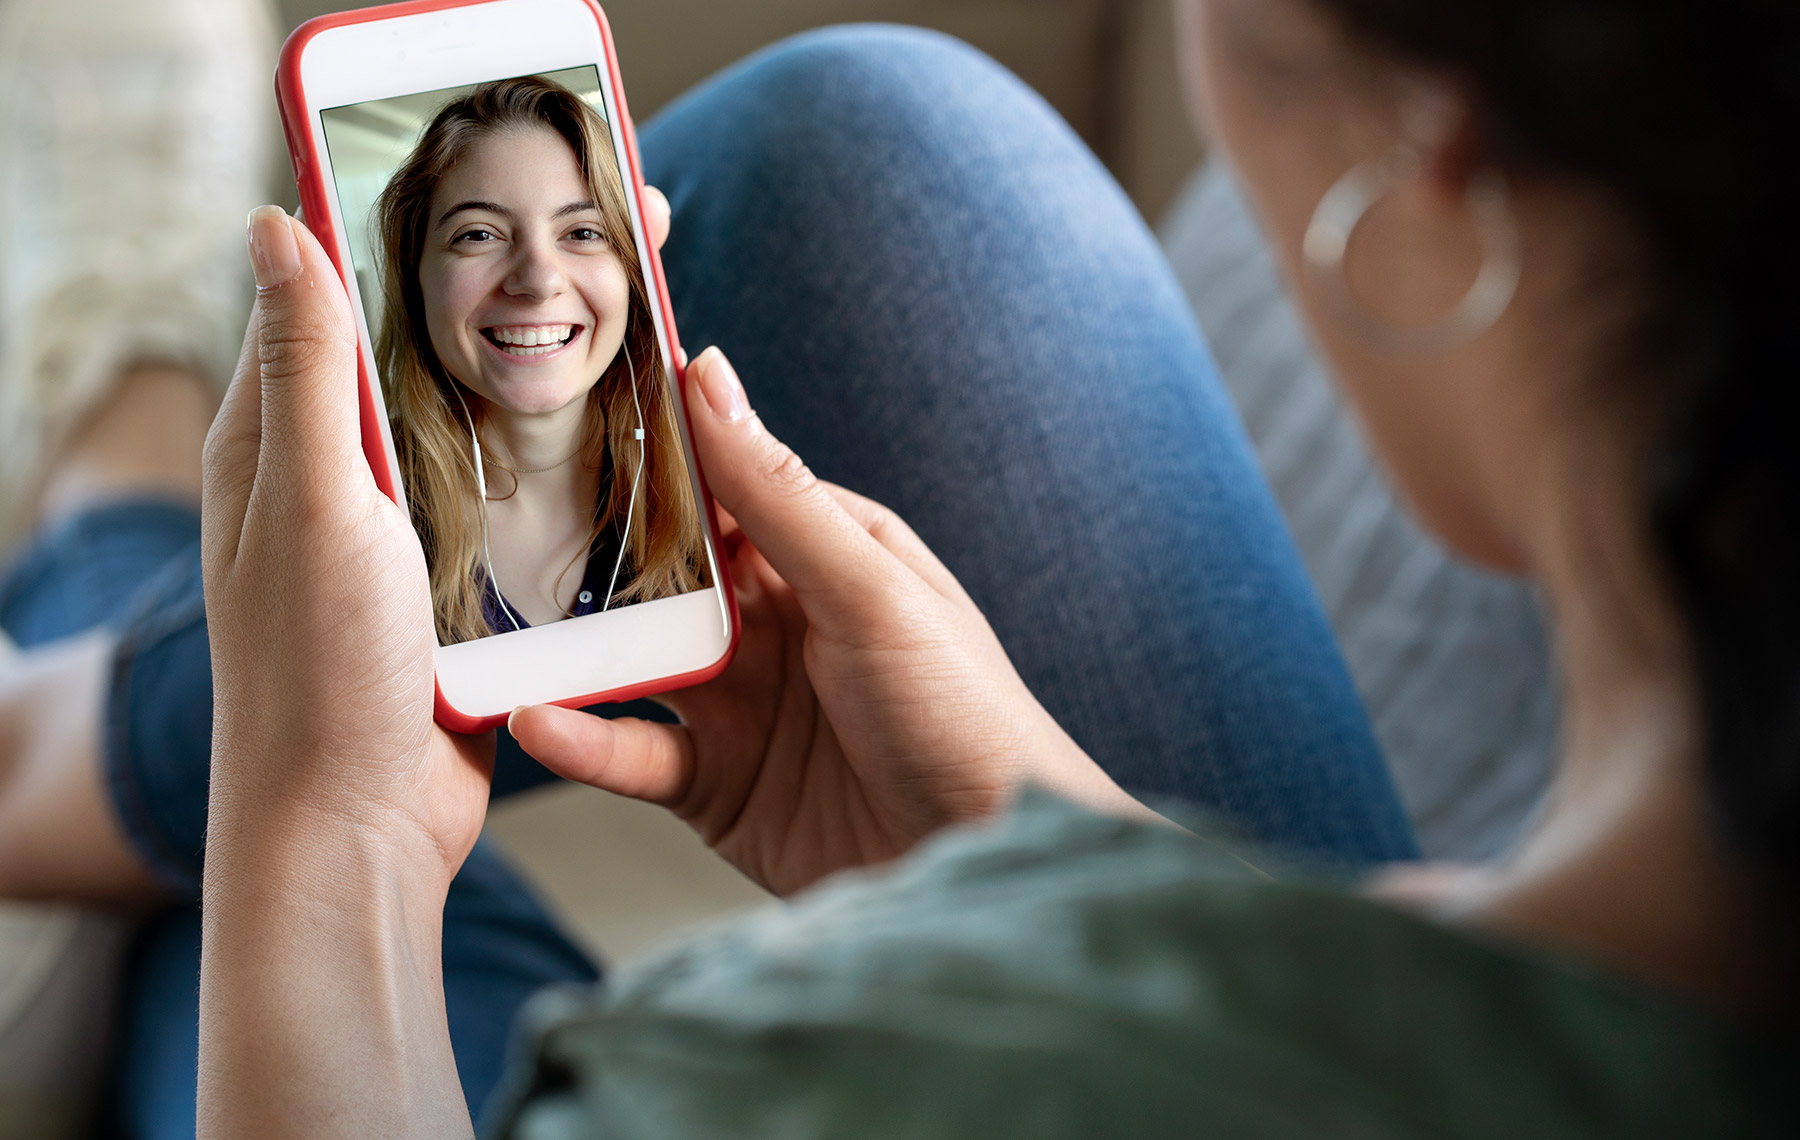 young woman using smartphone for video call-fomo